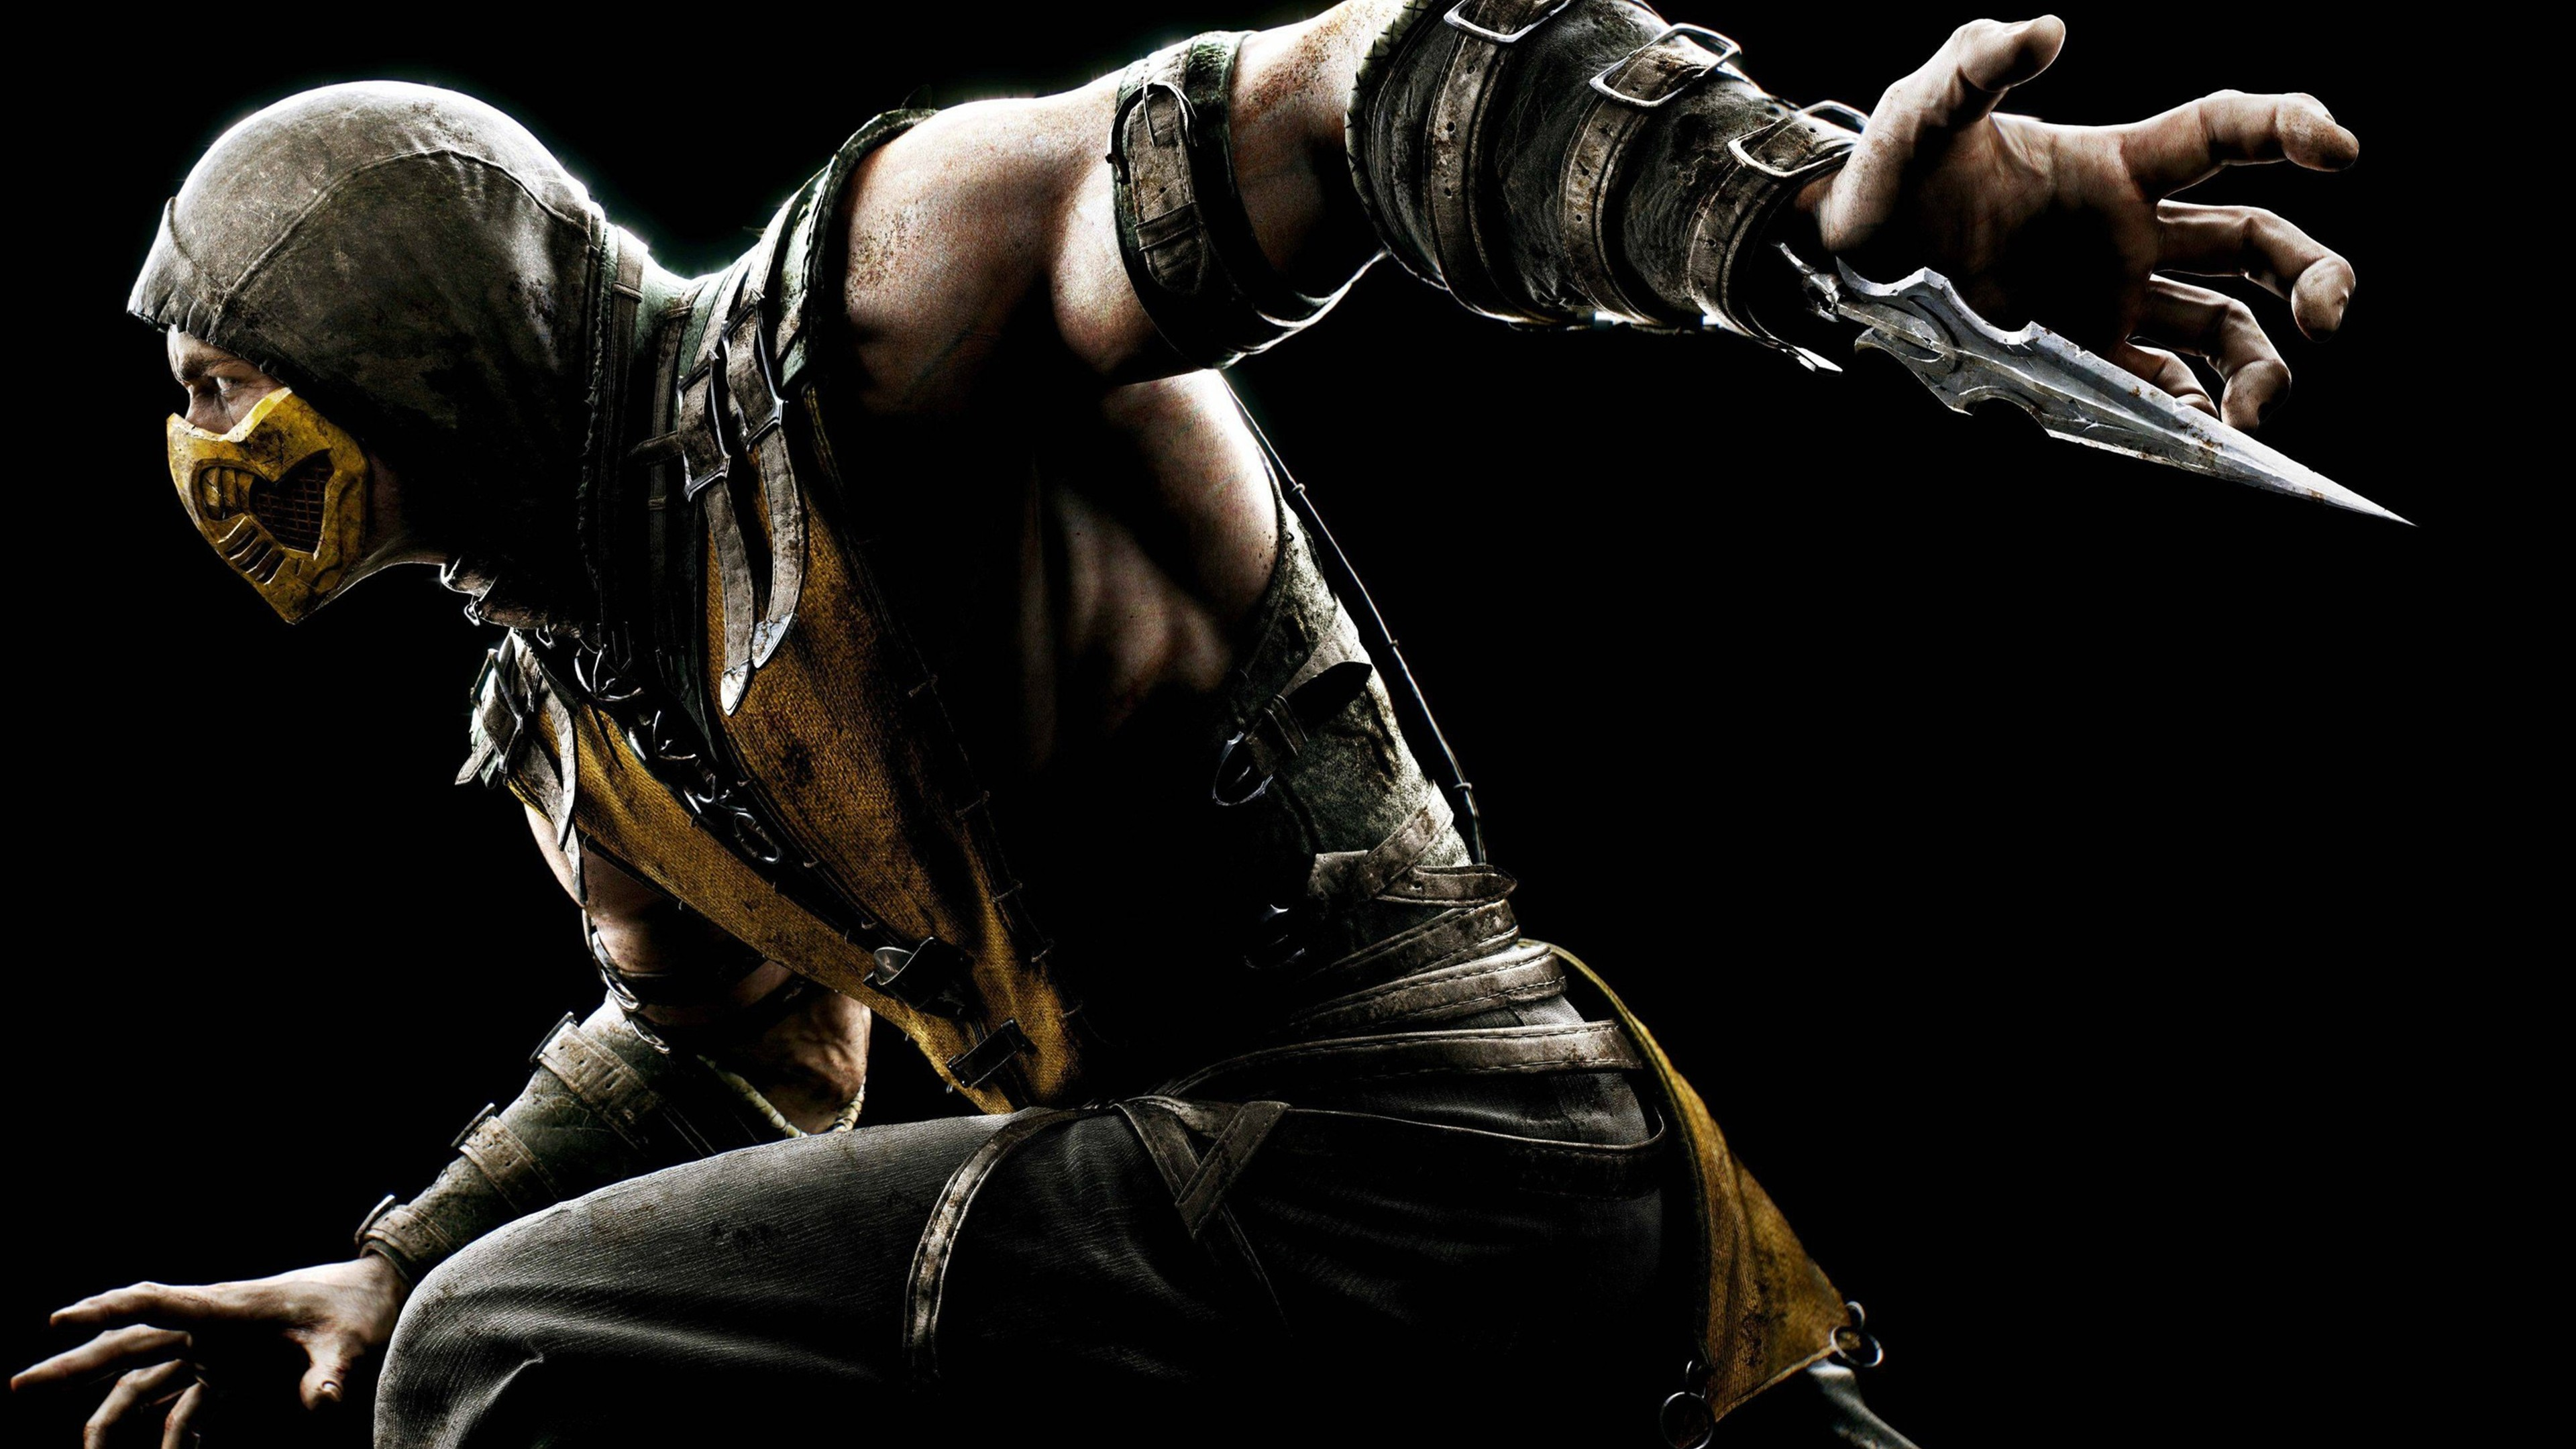 2048x1152 Mortal Kombat X Scorpion 2048x1152 Resolution HD